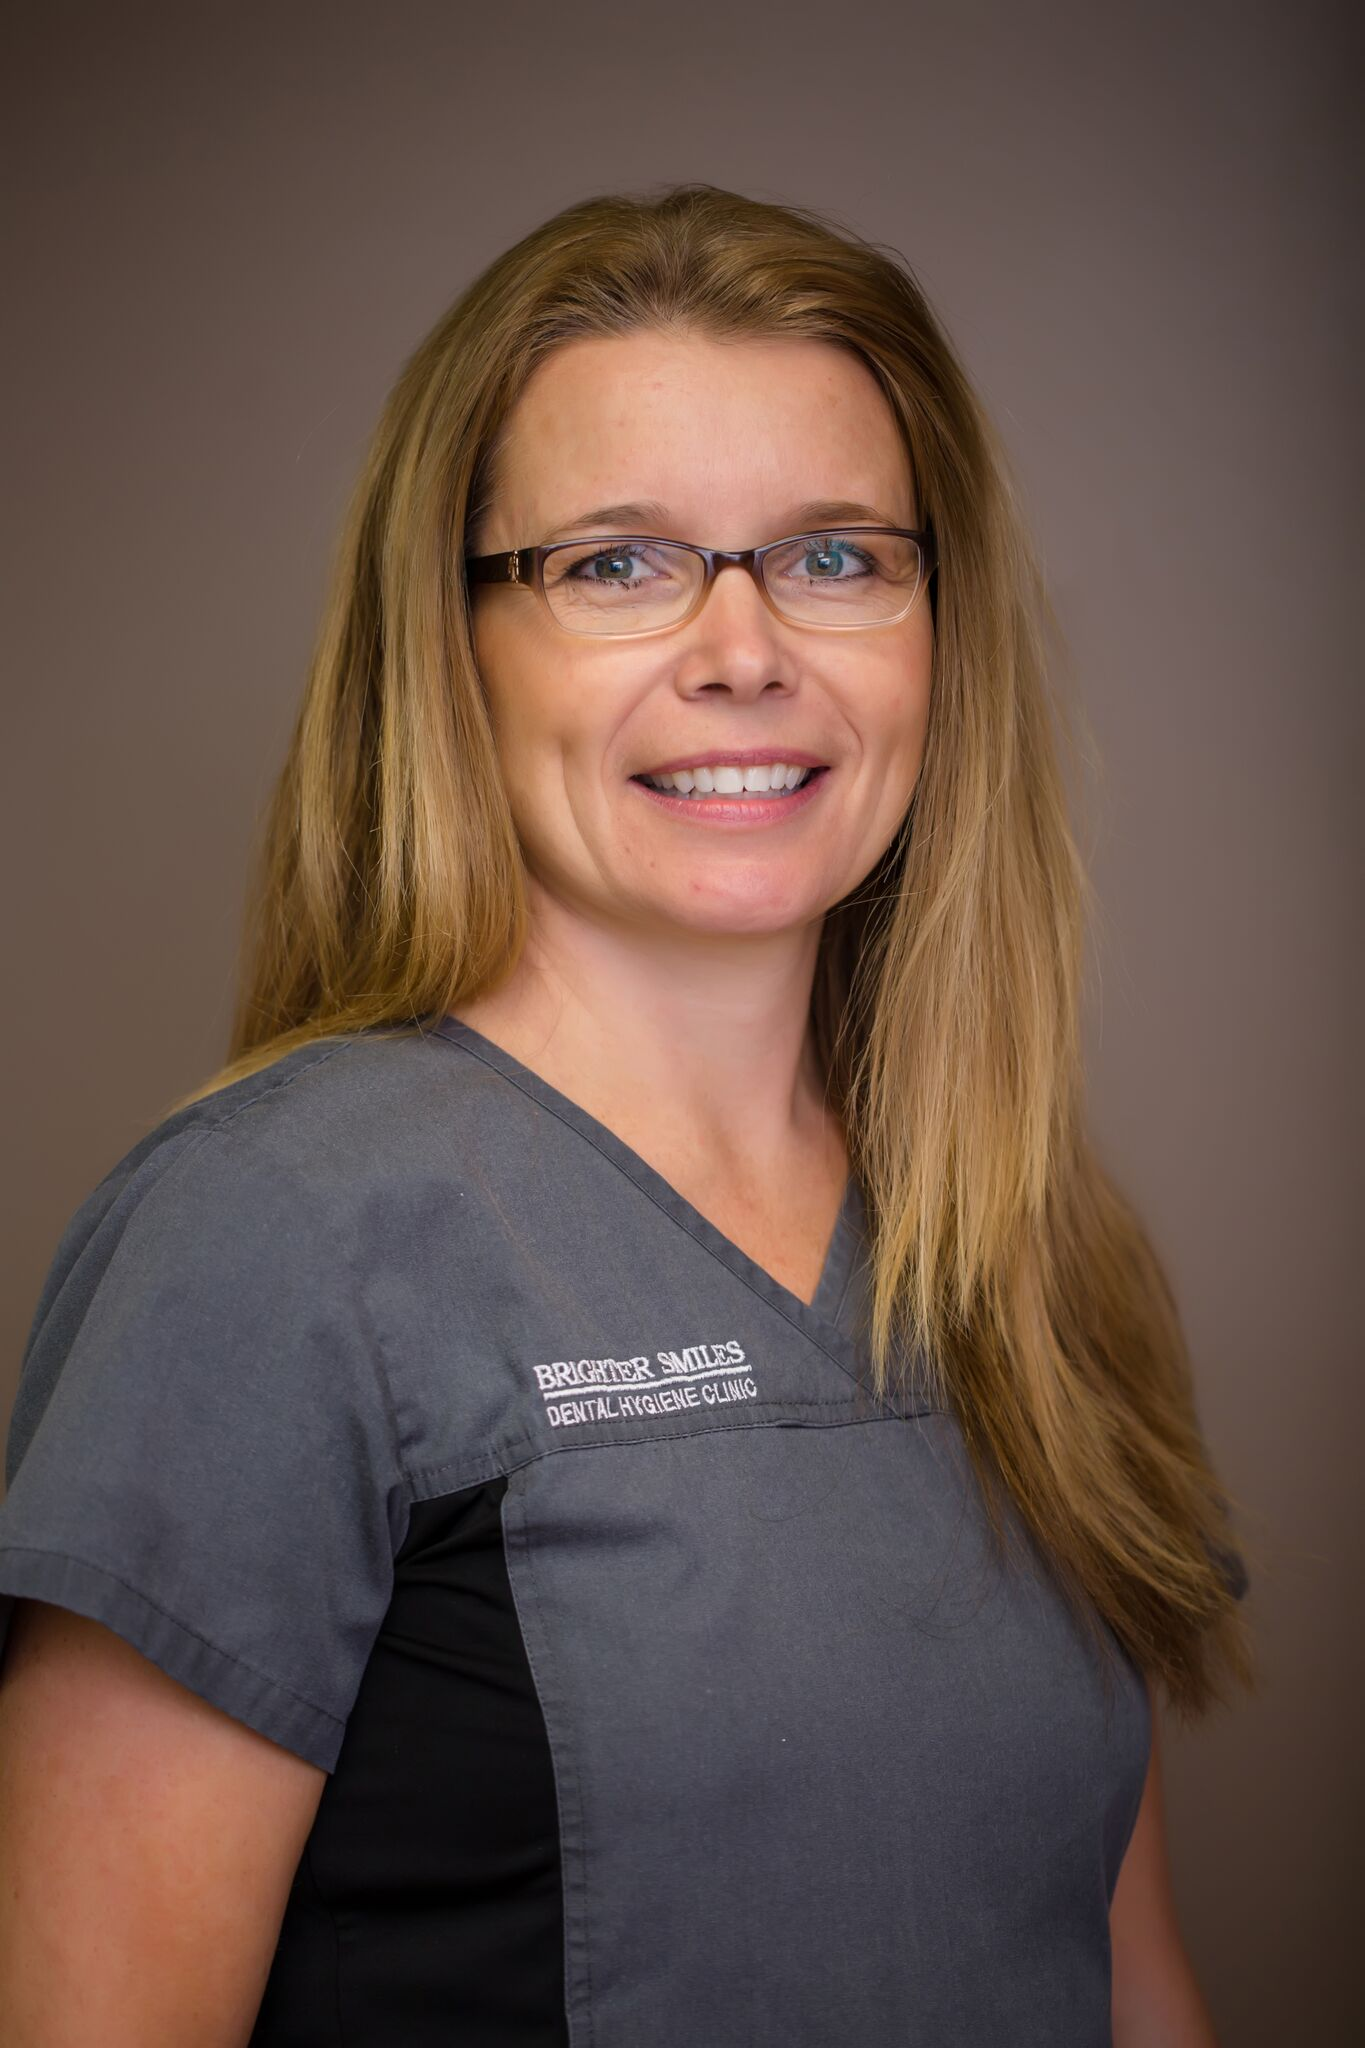 Meet Your Hygienist : Brighter Smiles Dental Hygiene Clinic